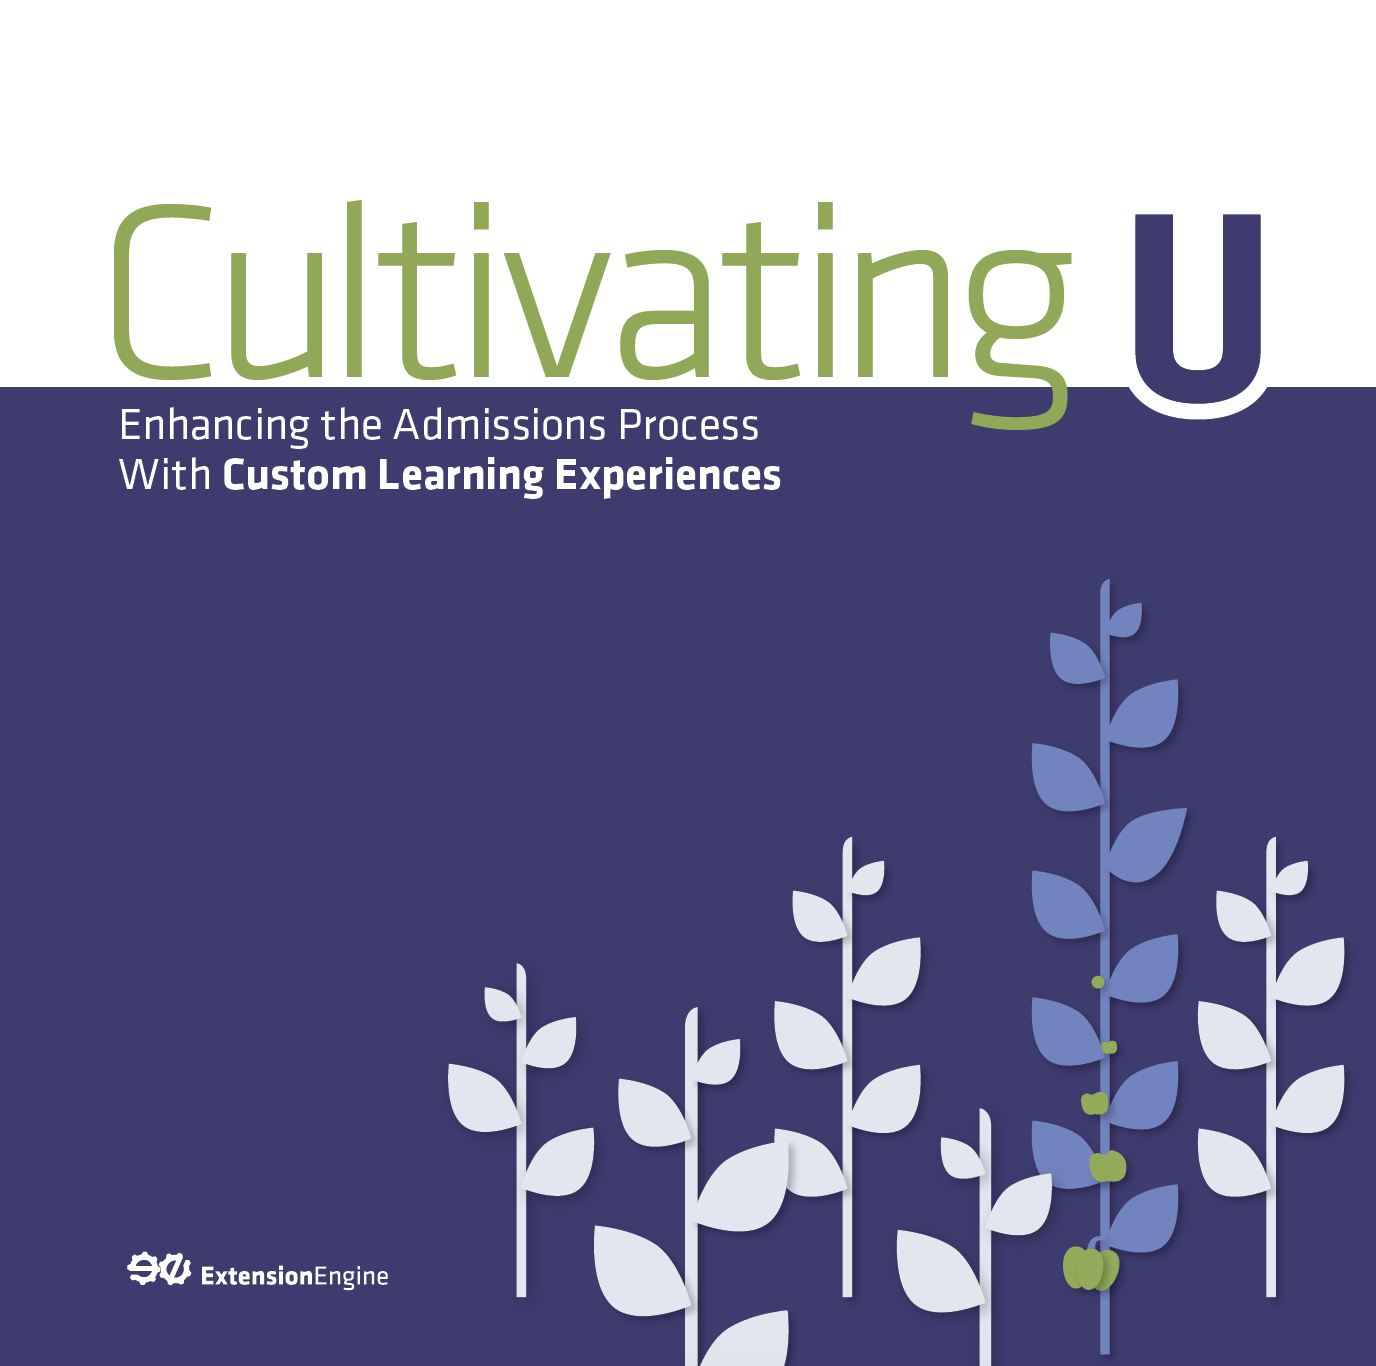 CultivatingU_Enhancing_The_Admissions_Process_With_Custom_Learning_Experiences_Cover.png